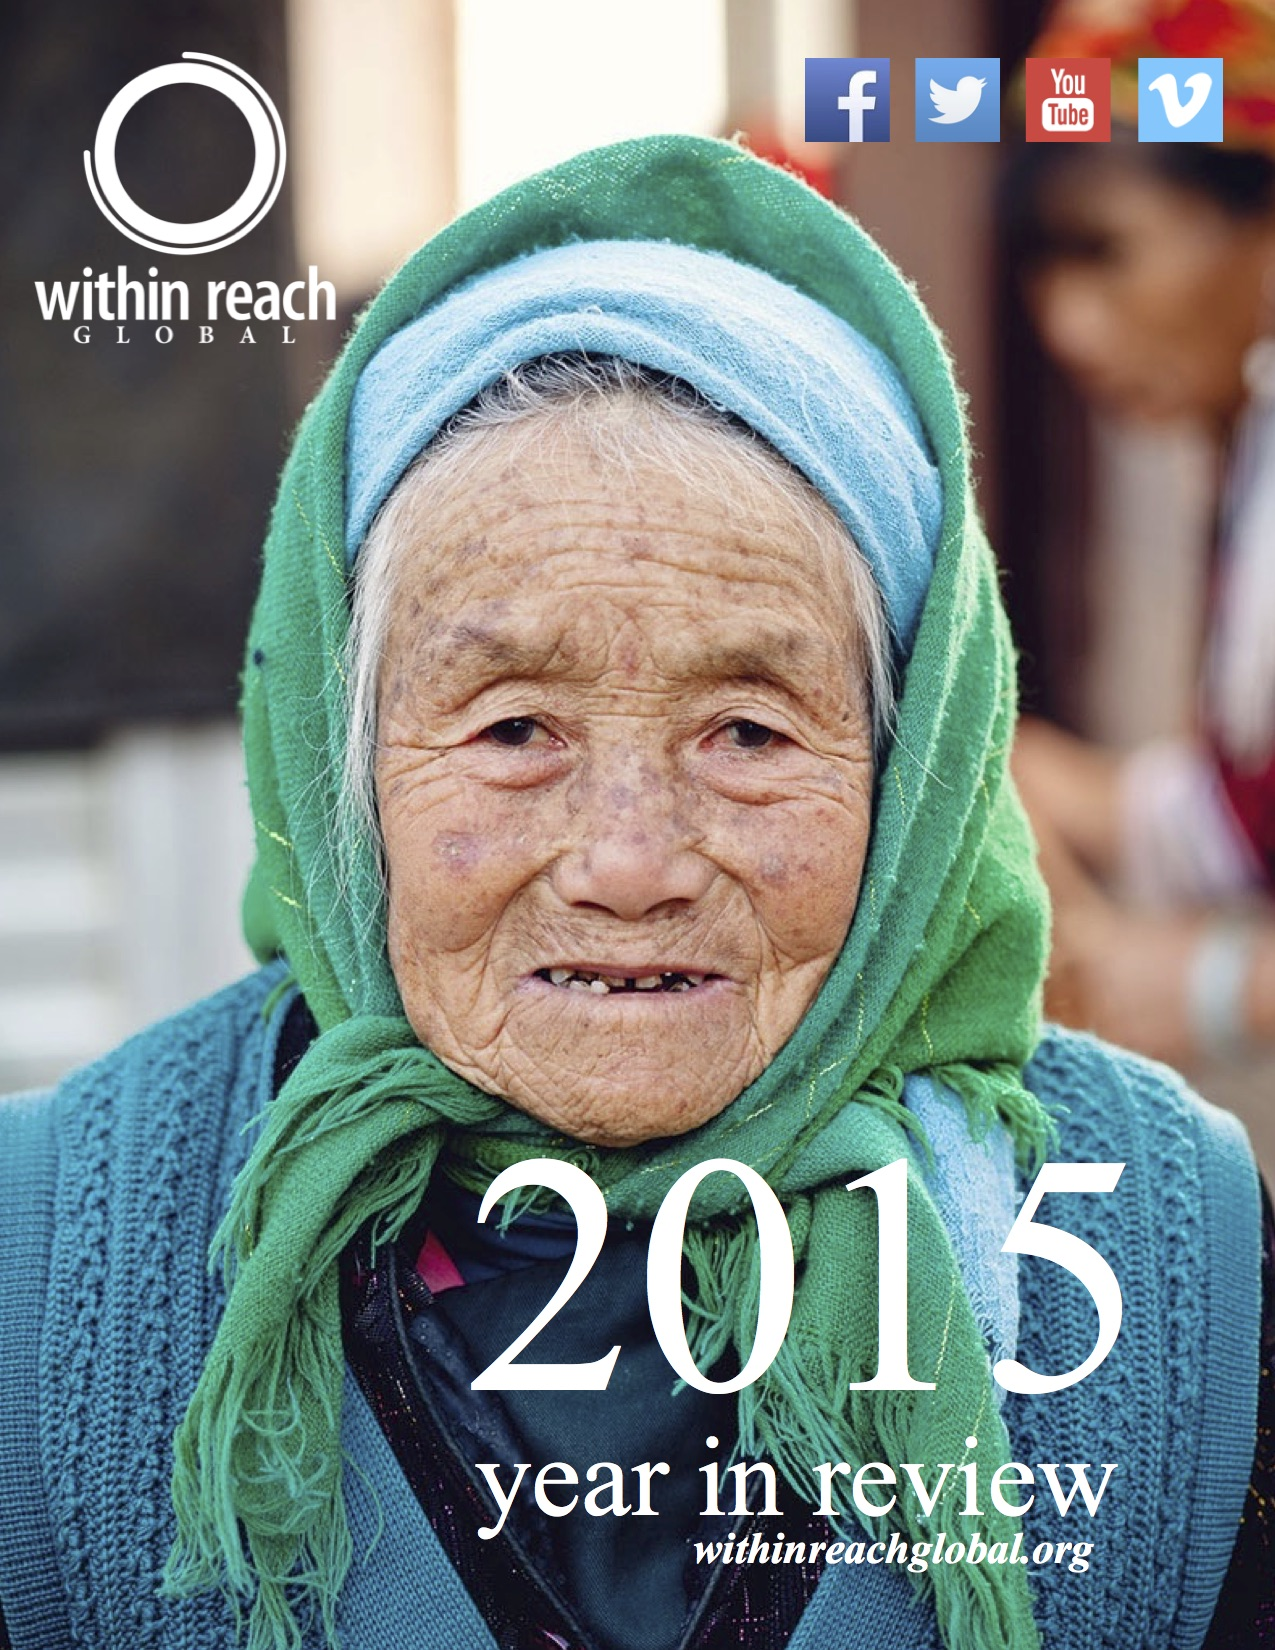 2015 Year In Review cover